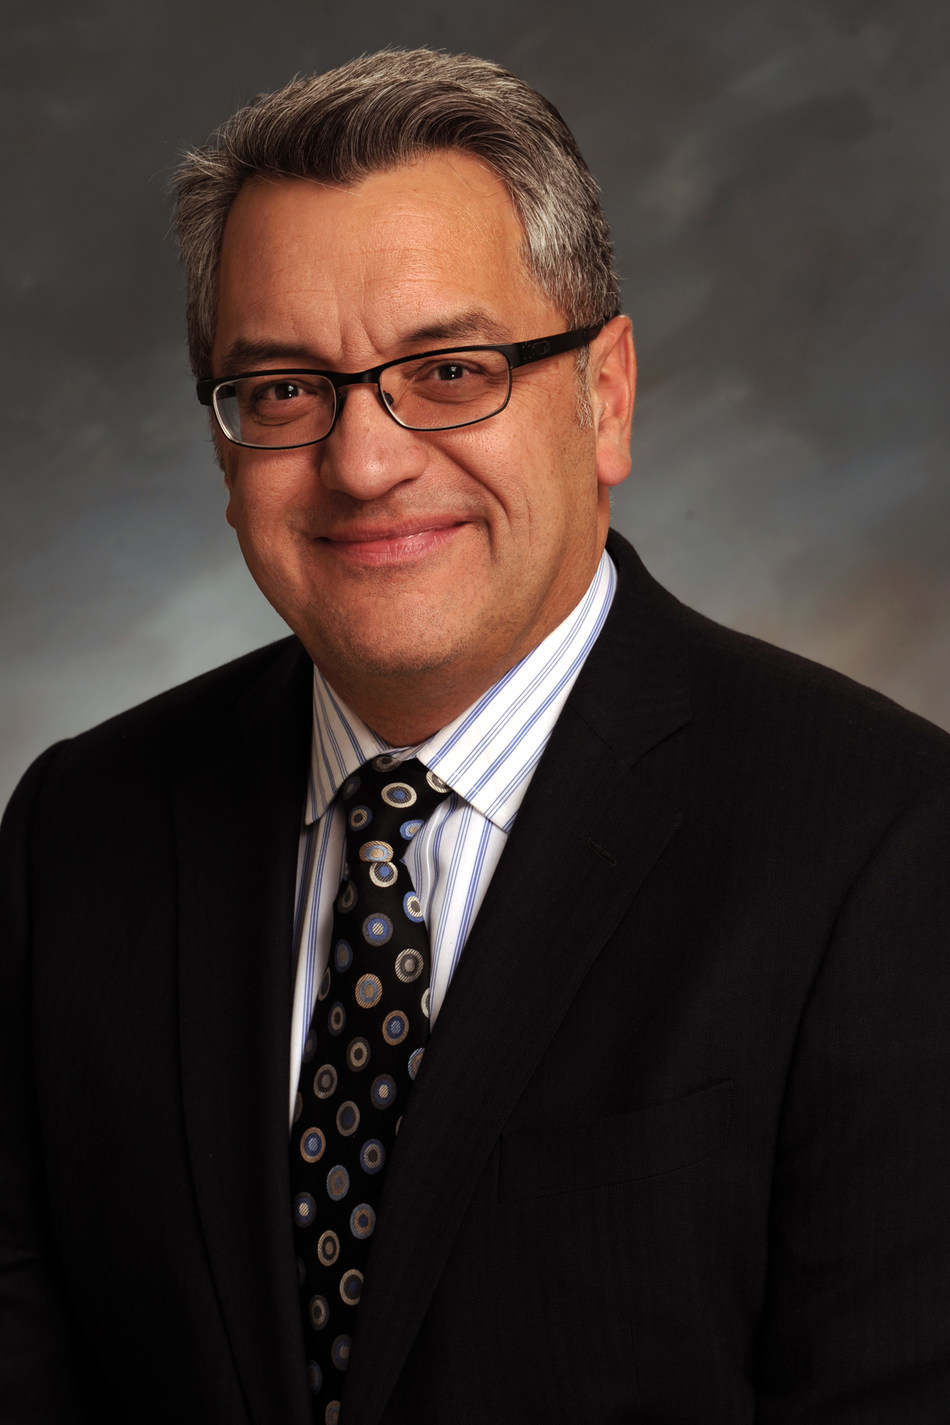 Ismael Guerrero named President & CEO of Mercy Housing